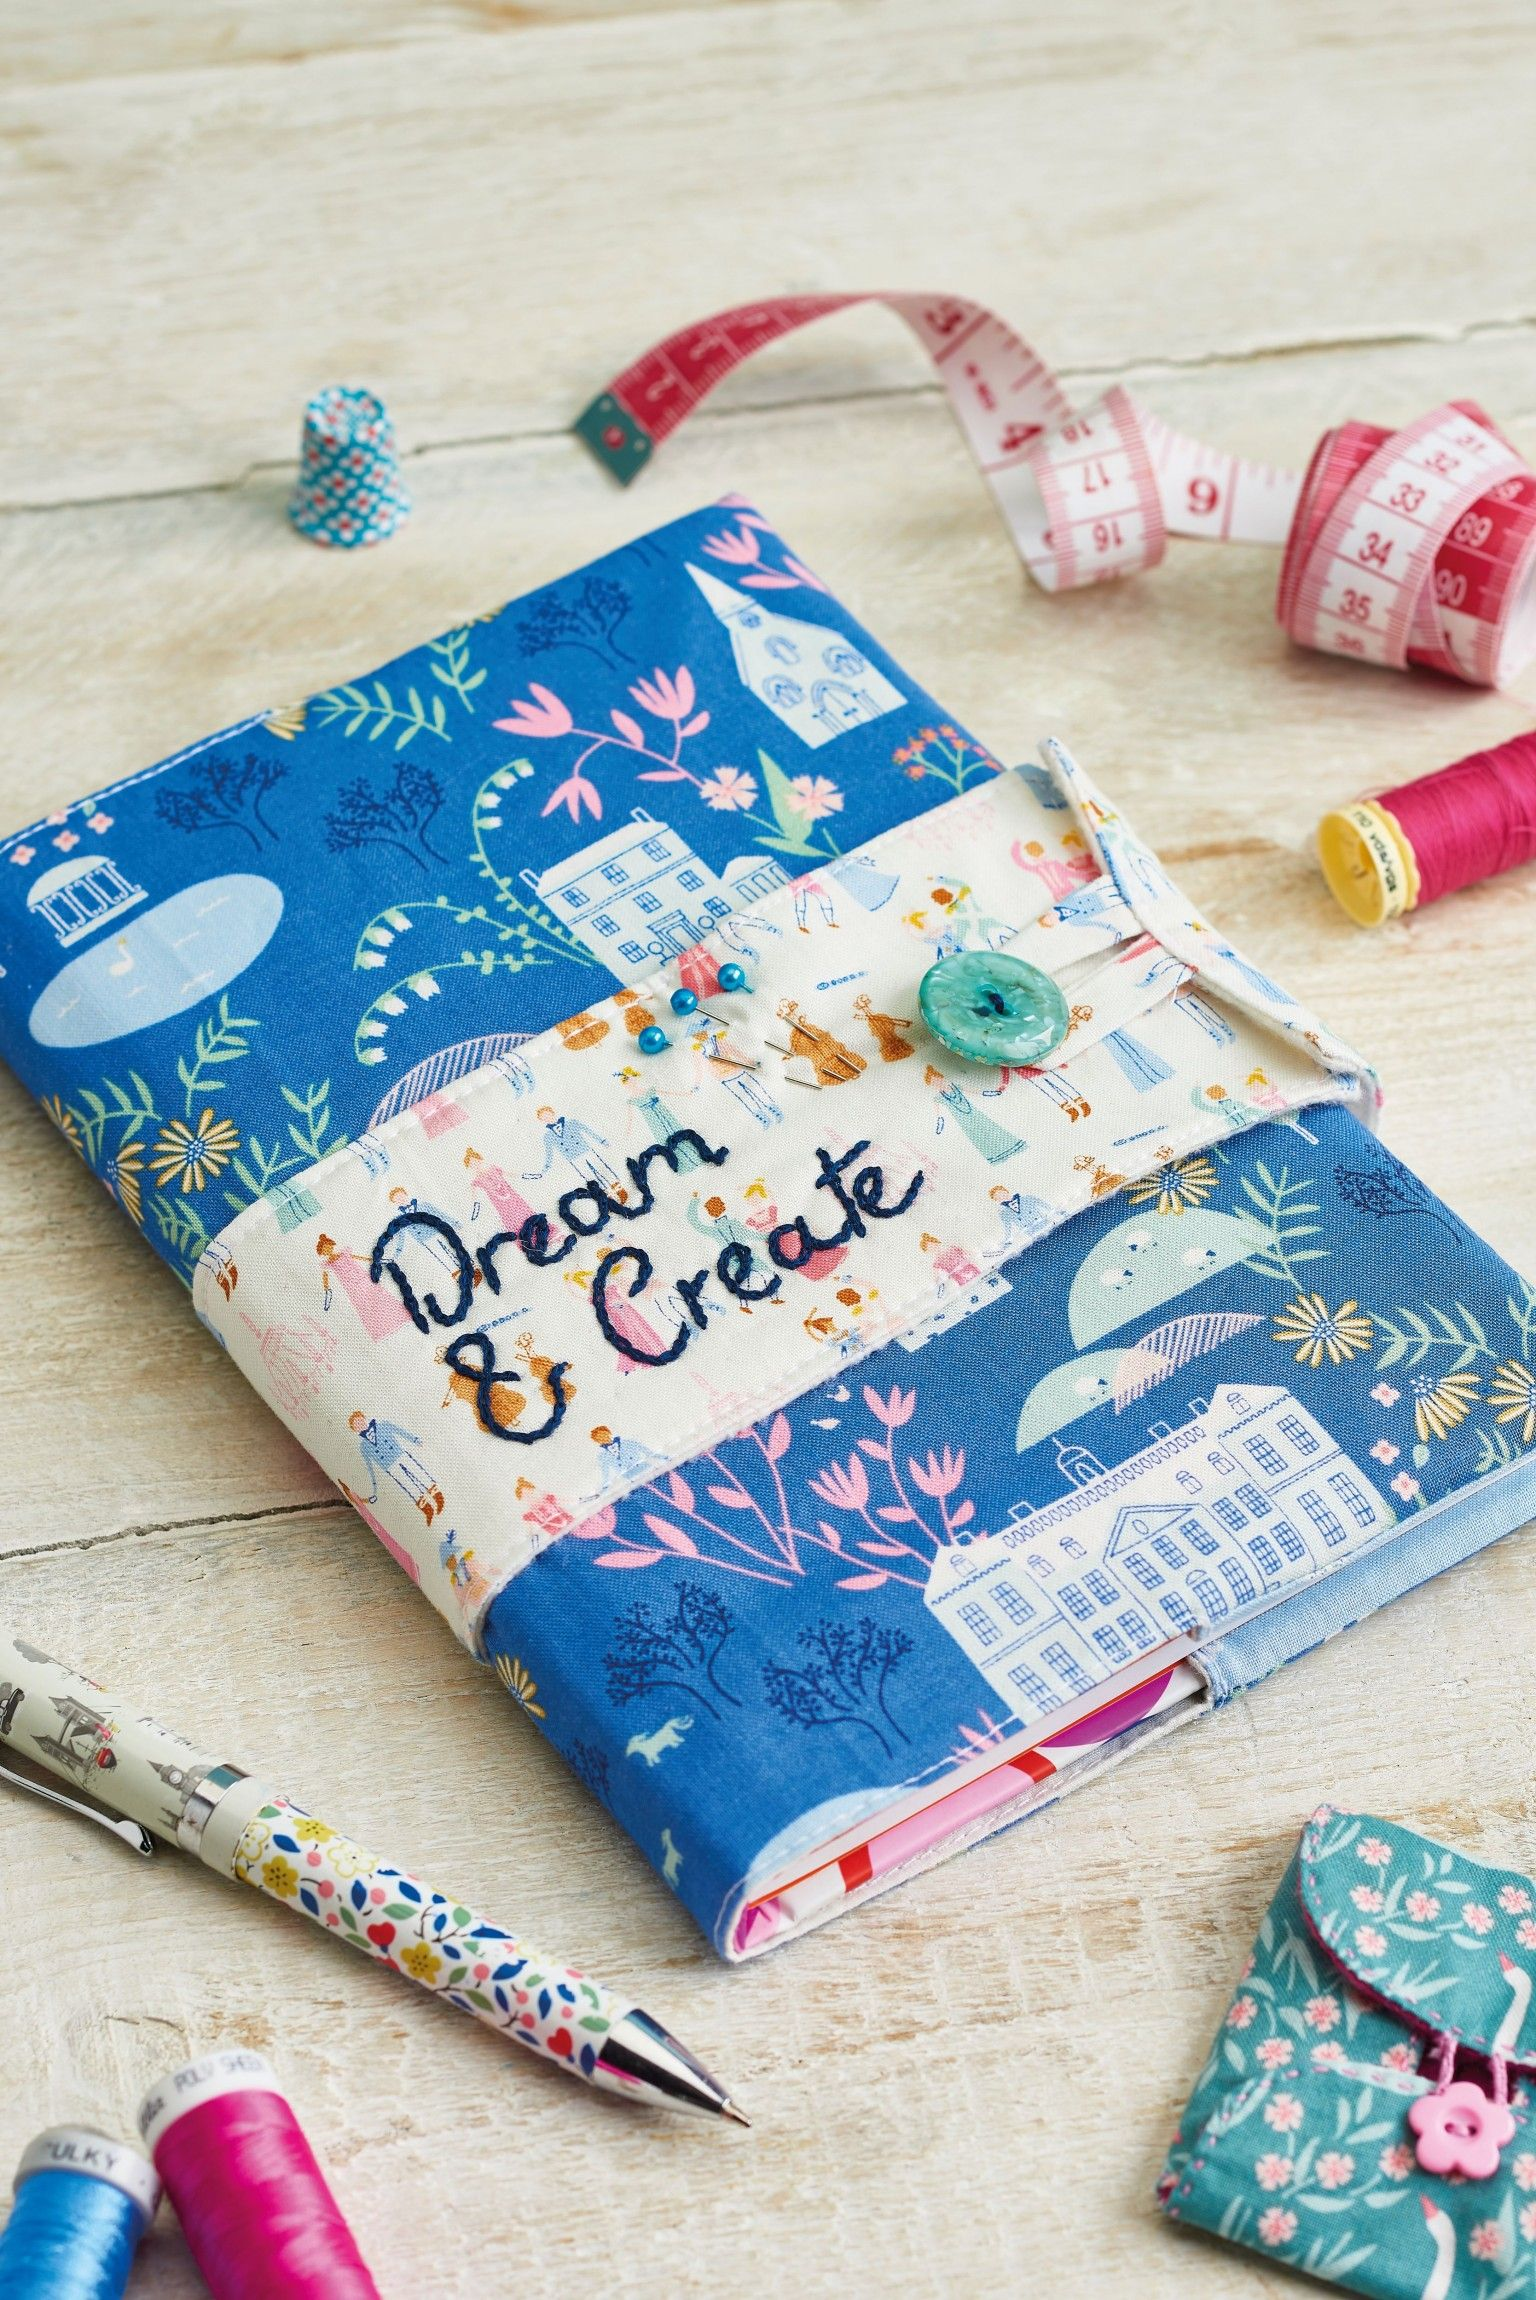 Sewing Journal Cover - Free sewing patterns - Sew